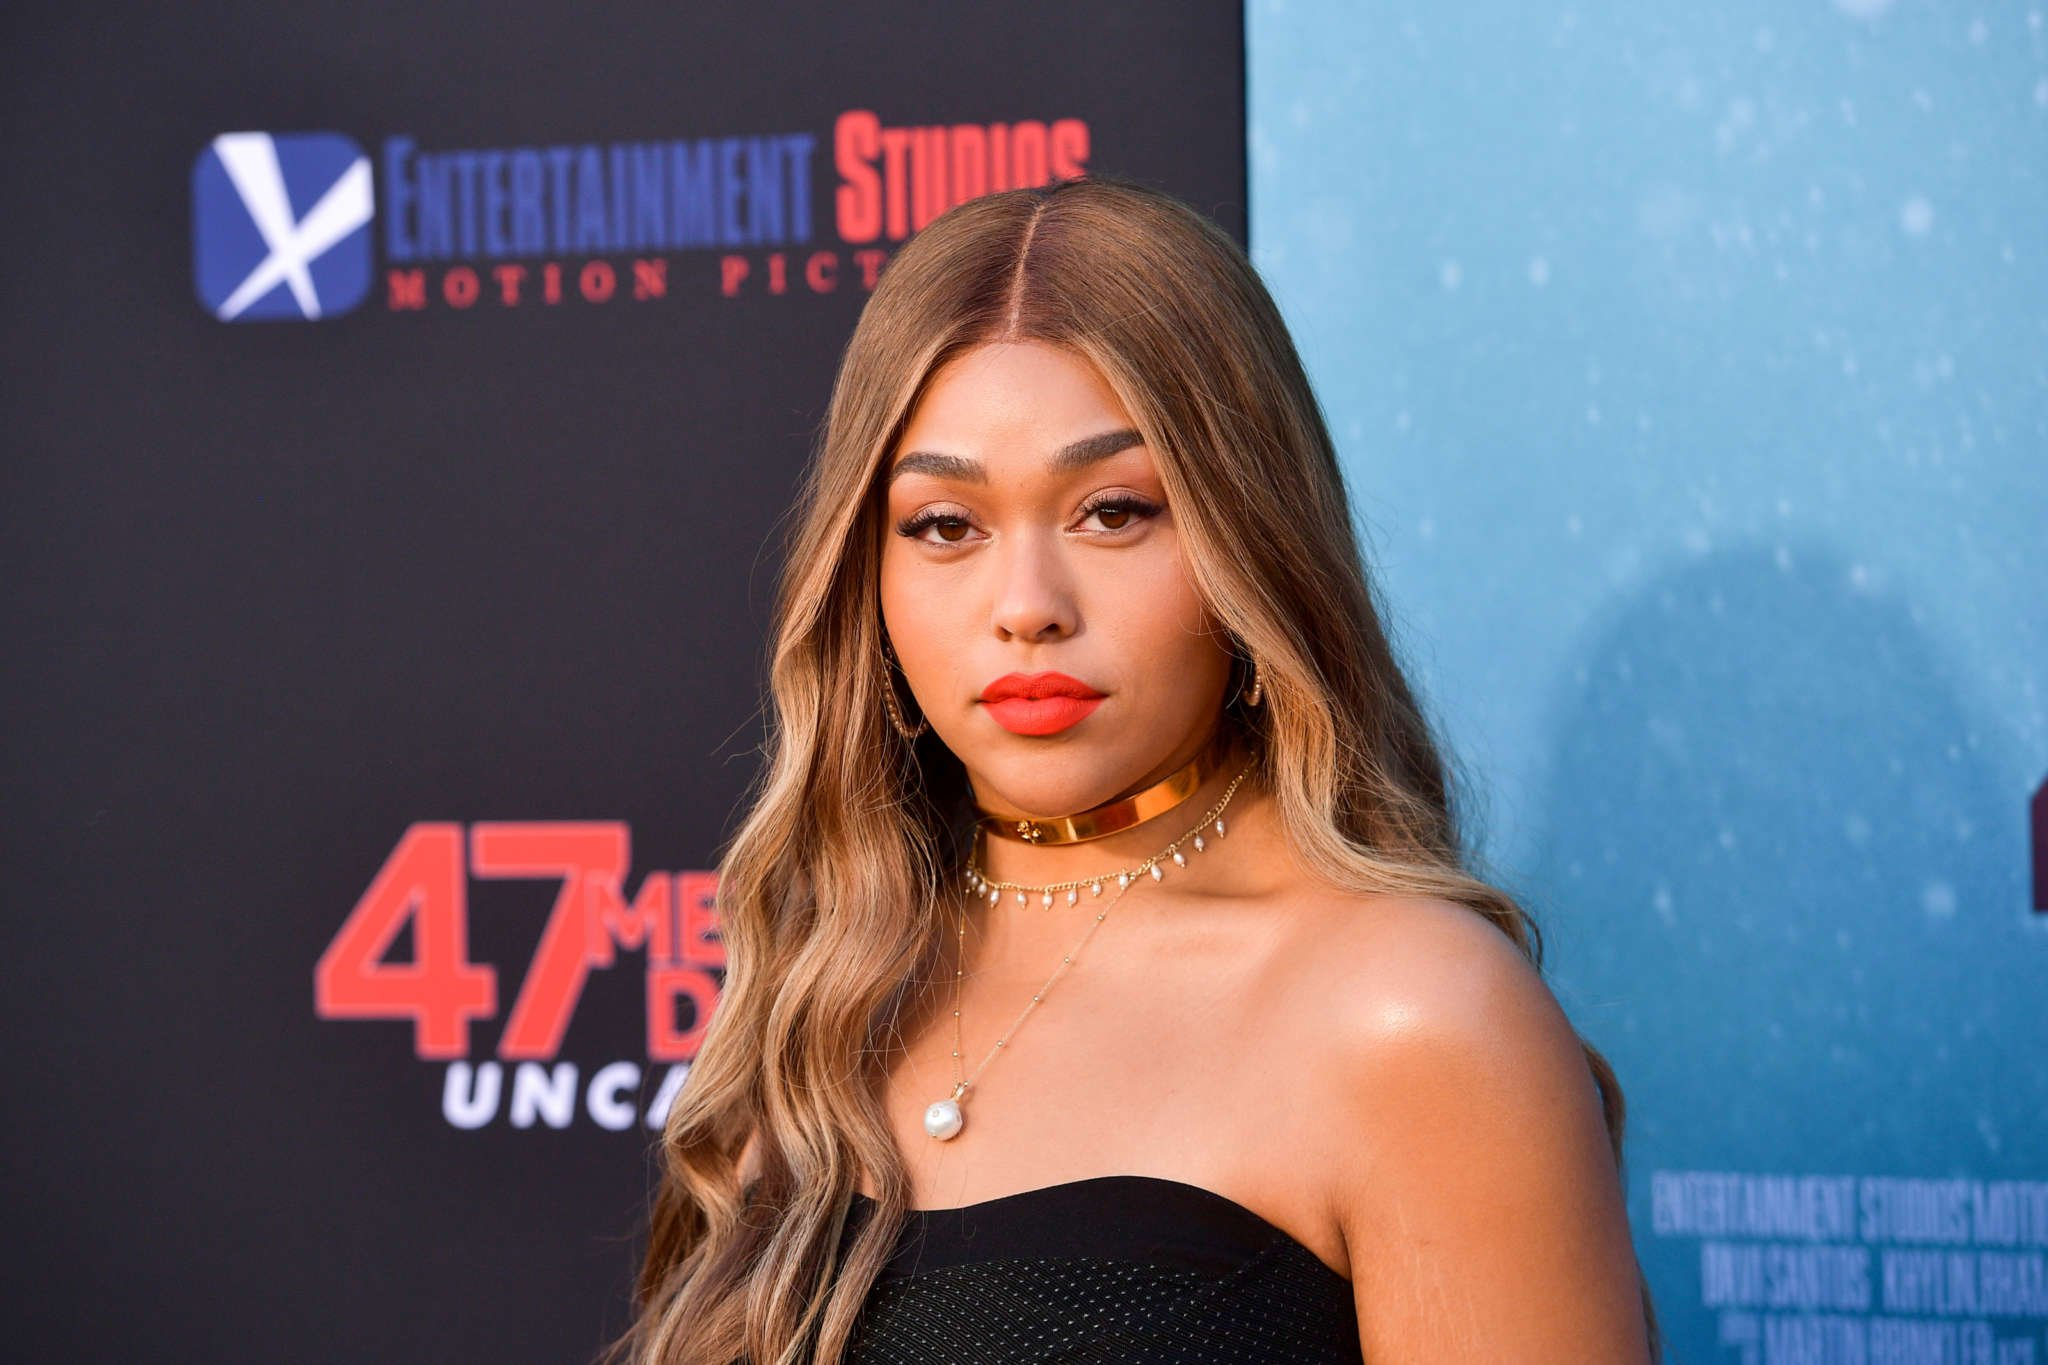 Jordyn Woods Addresses Hair Care In Her Latest Video